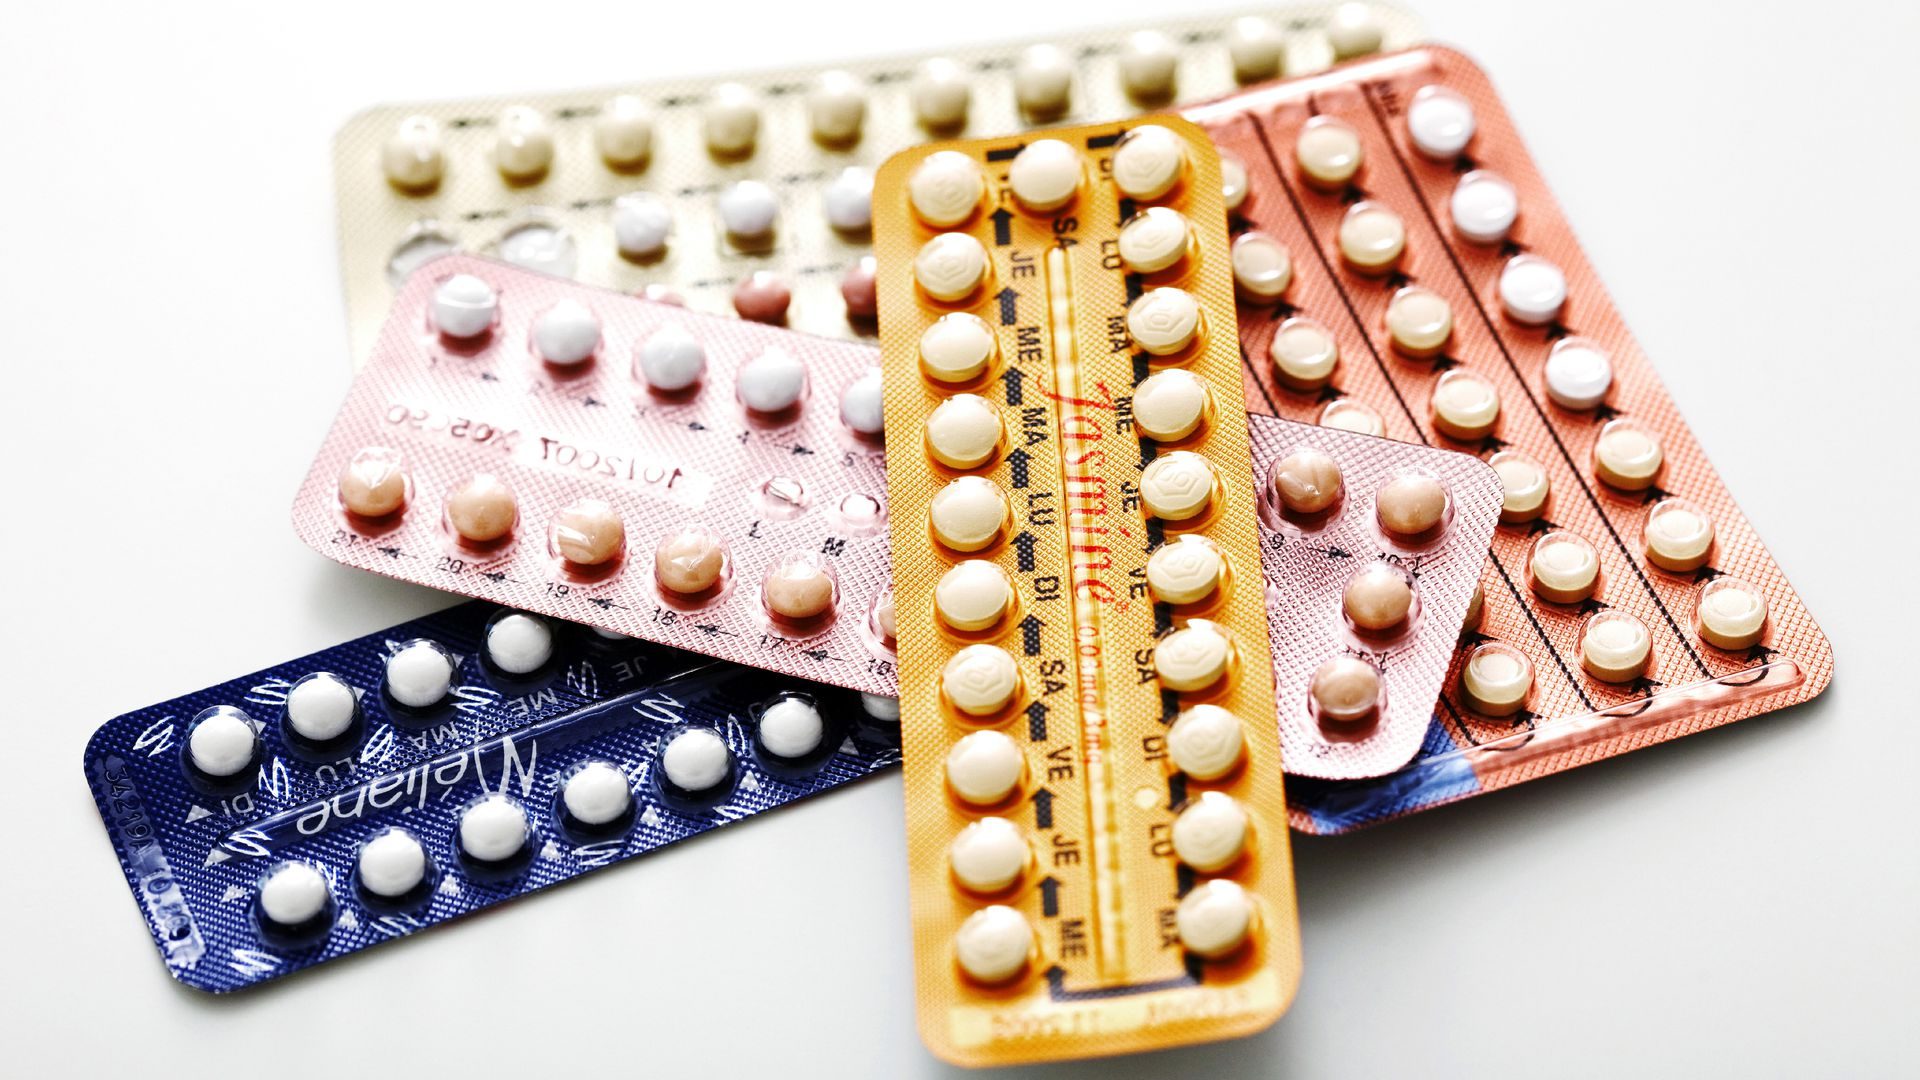 Birth control pills in multicolors in a stack.